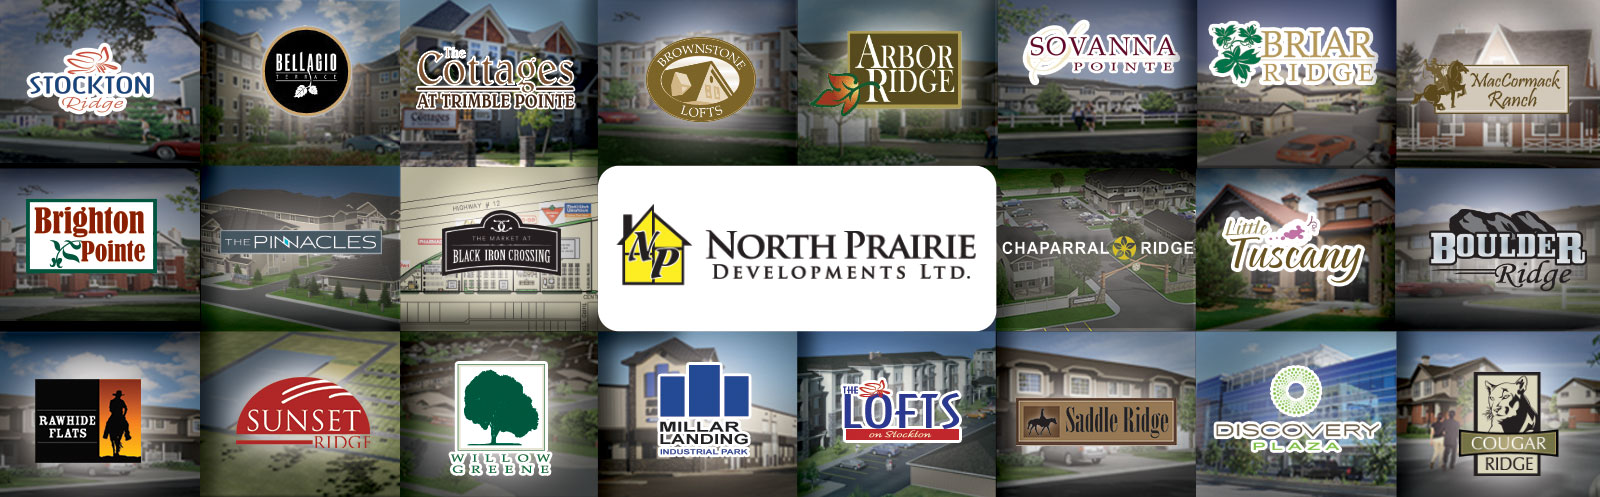 North Prairie Developments Ltd